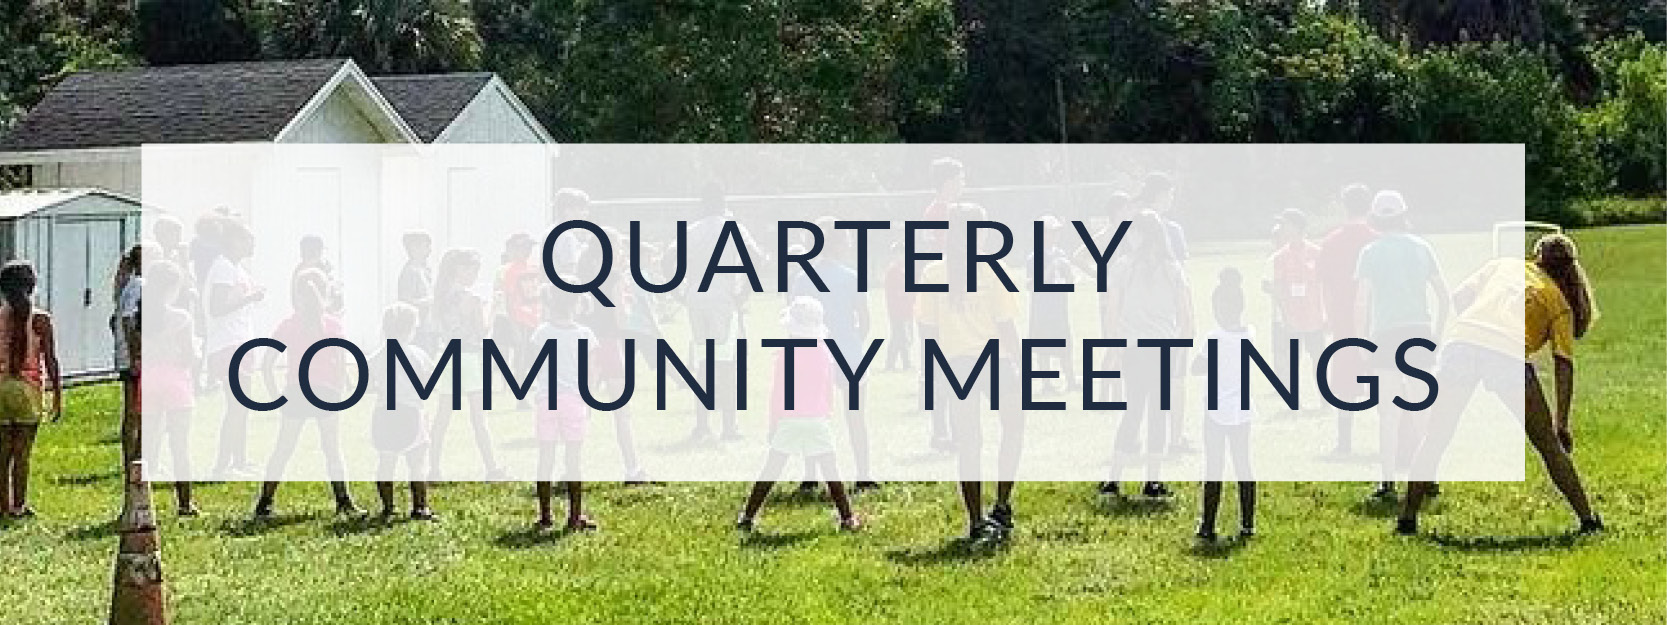 Quarterly community meetings at prayer room church